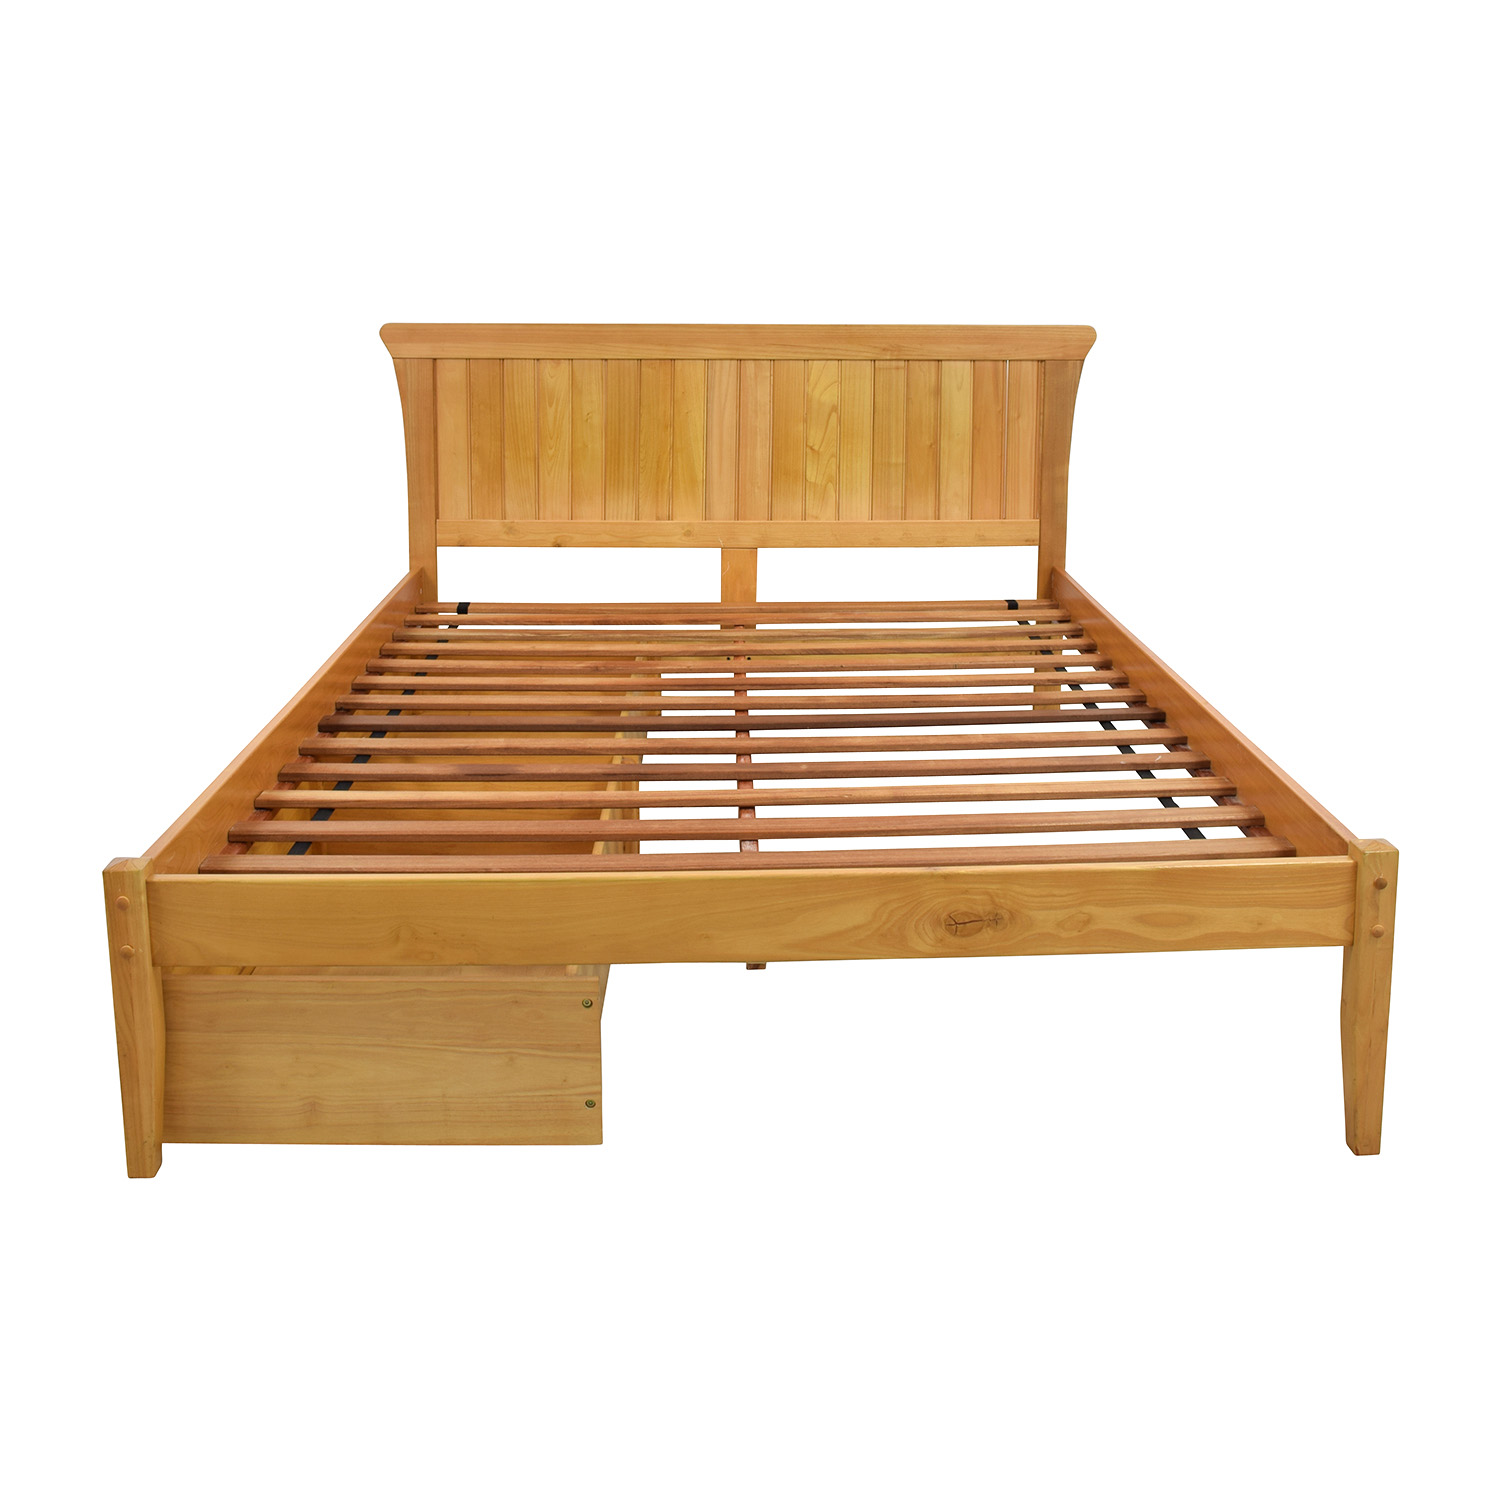 Solid Wood Bedframe with Storage for sale